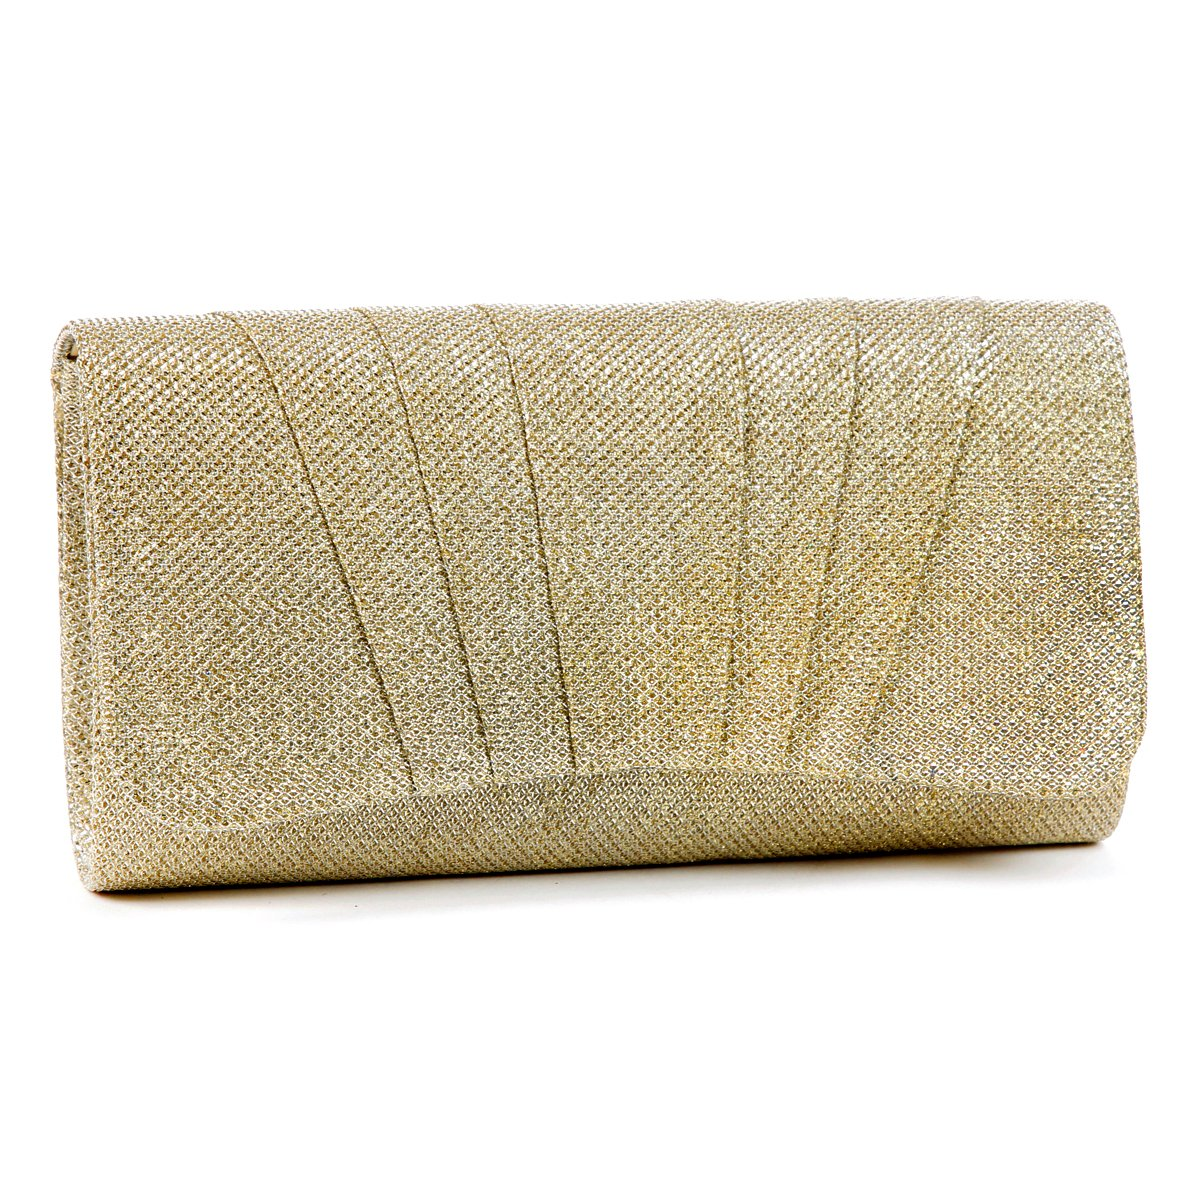 Damara Womens Perfectly Pleated Clutch Party bags,gold